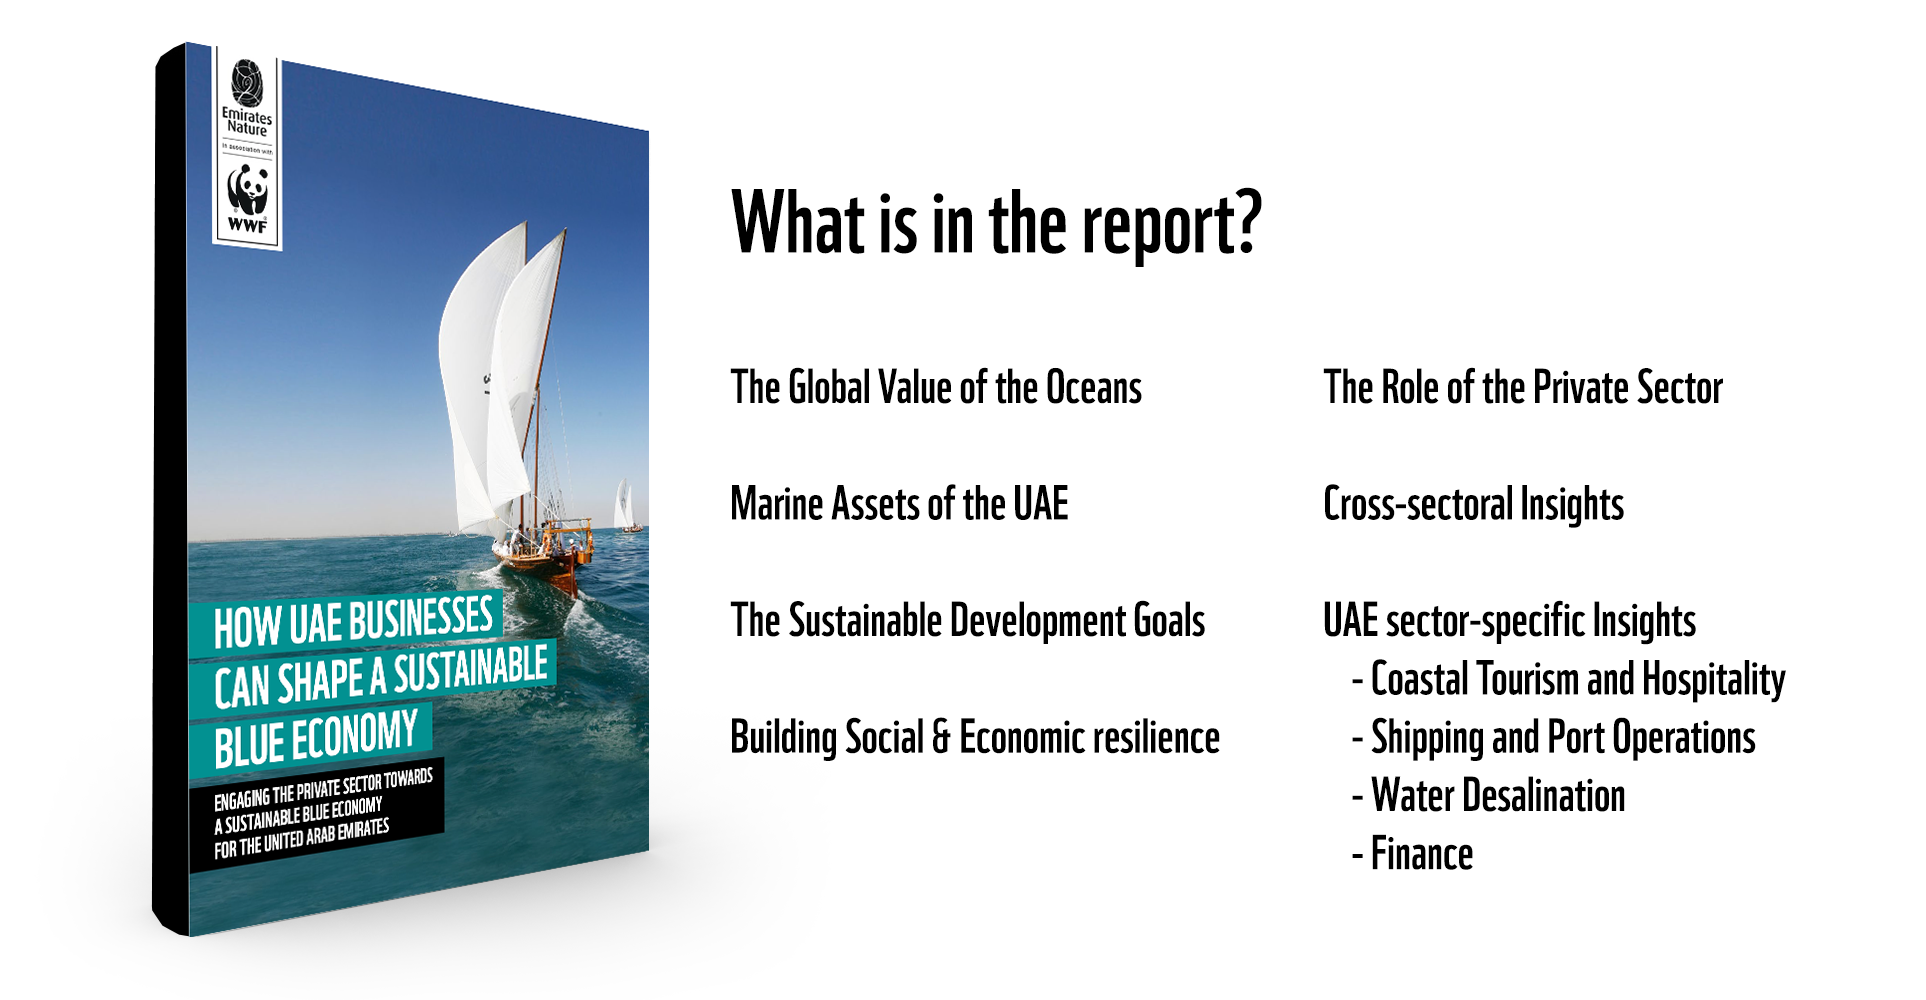 UAE's Sustainable Blue Economy Report - What is inside?